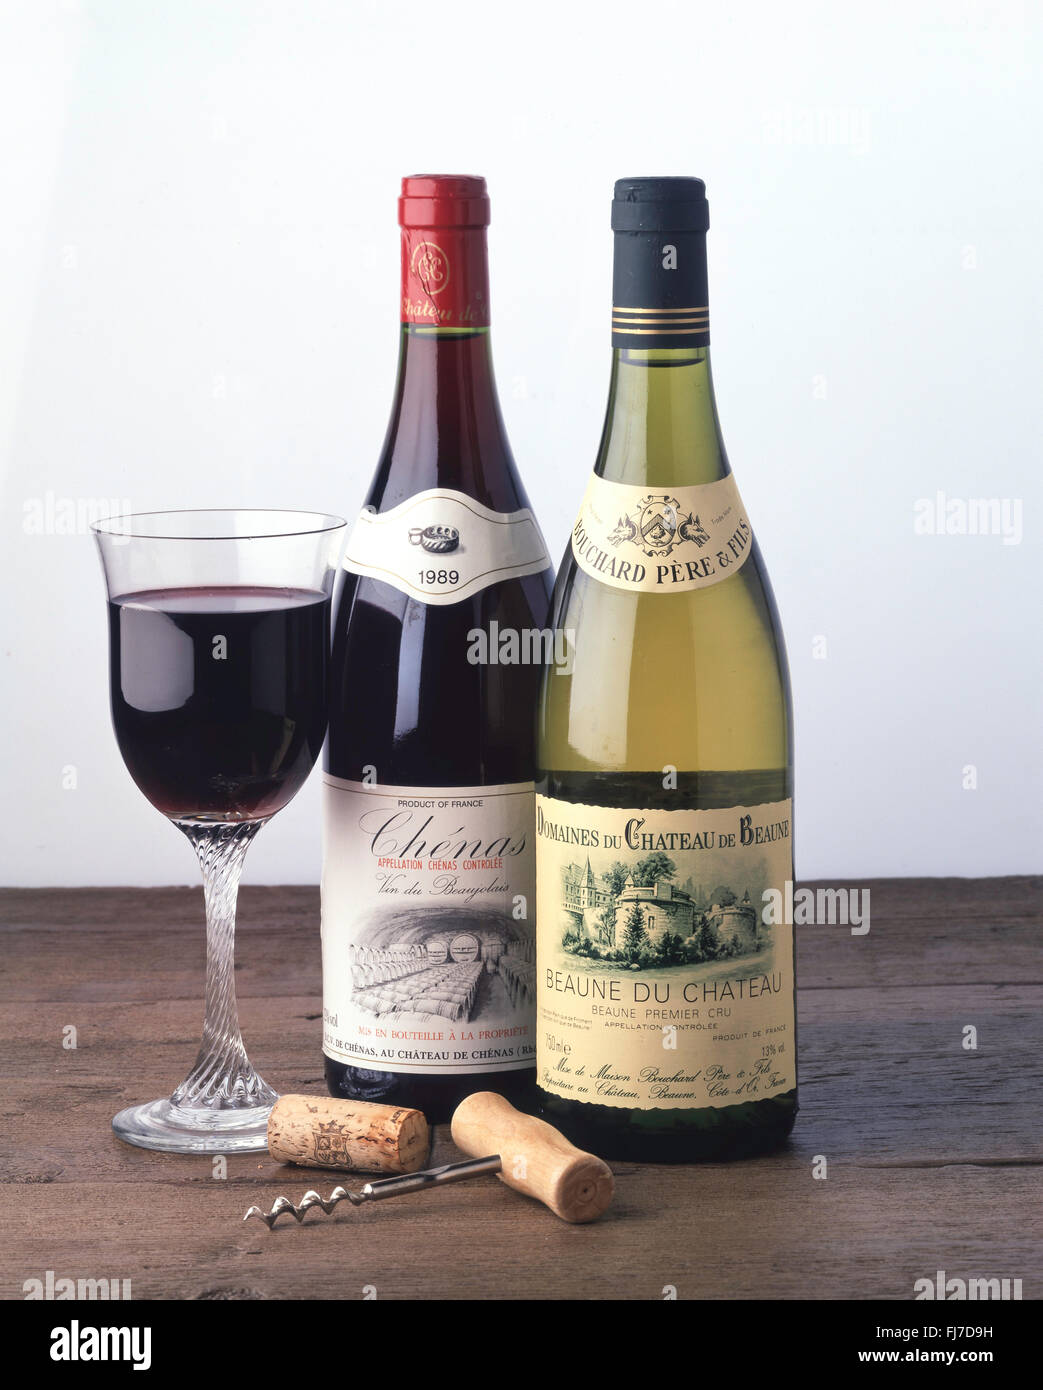 Bottle of Beaune du Chateau 1988 and Chenas 1989 French wine in studio setting. - Stock Image